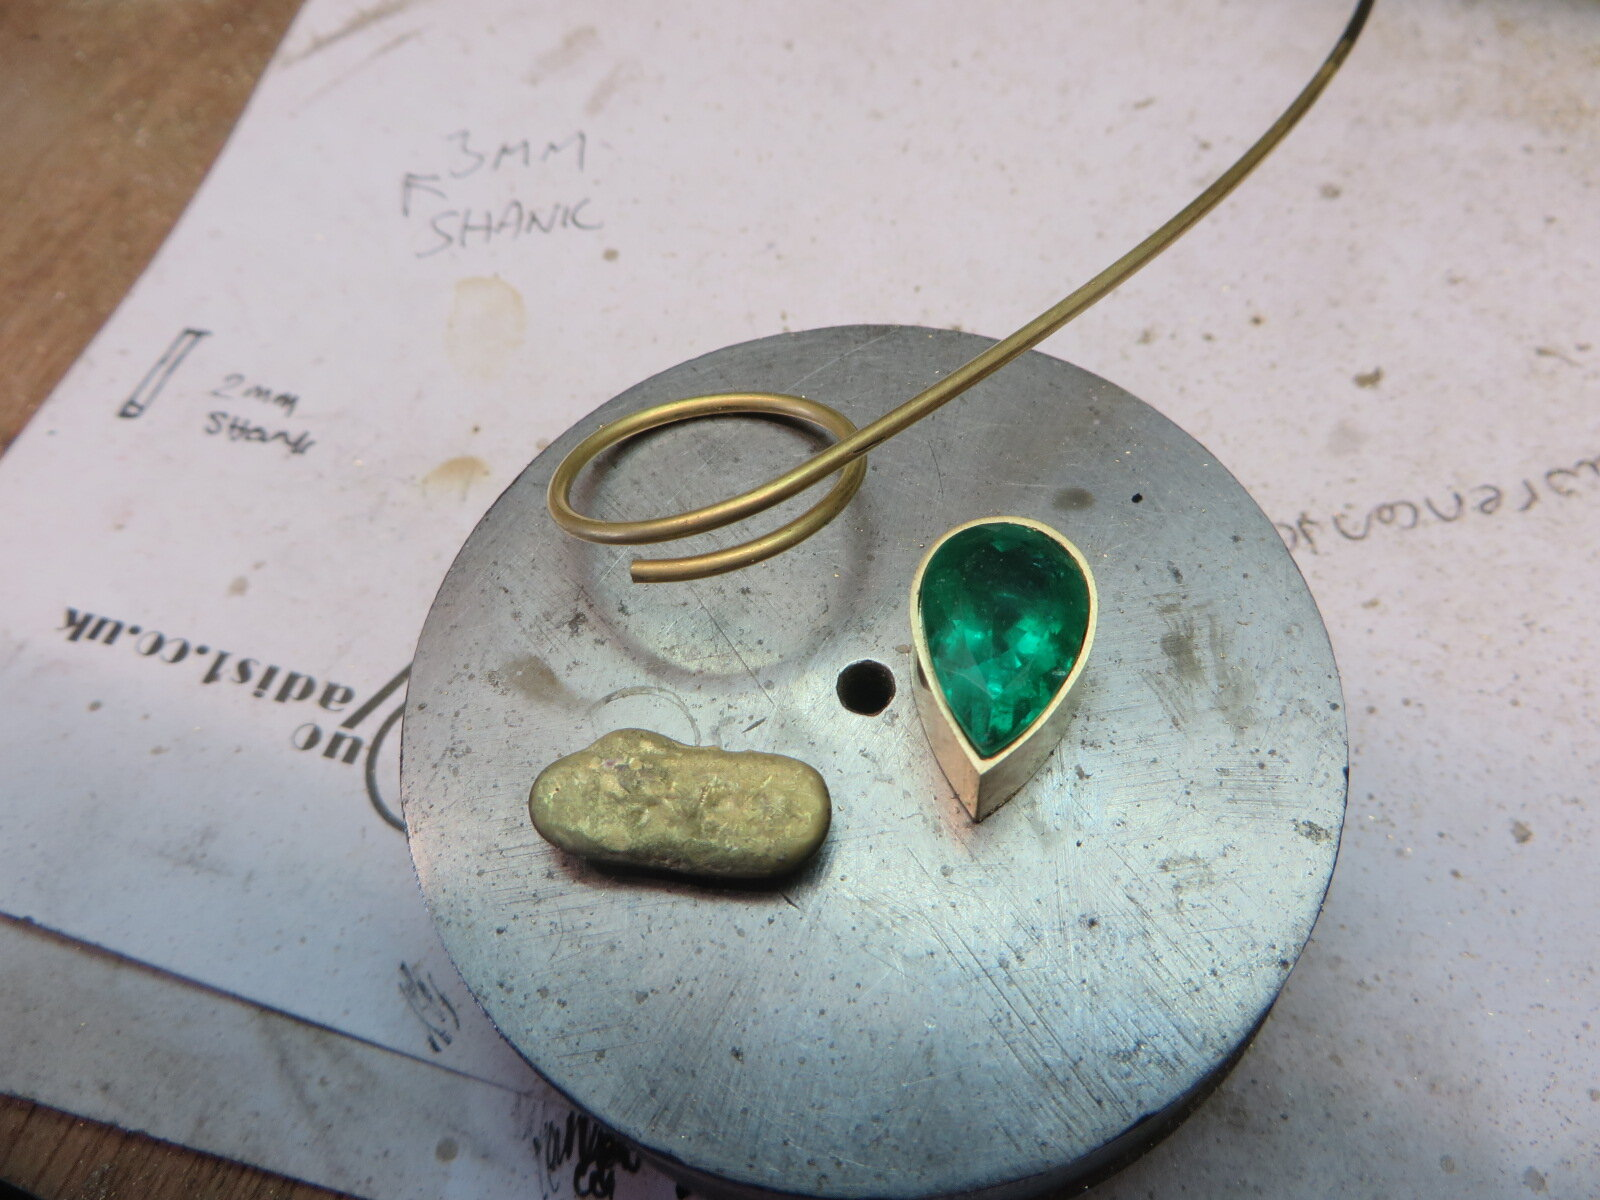 Start of the Commission process, showing the setting part of the ring and an ingot of Gold ,all this gold is from the clients own old Jewellery and is being remodeled into a new Emerald/Diamond ring.